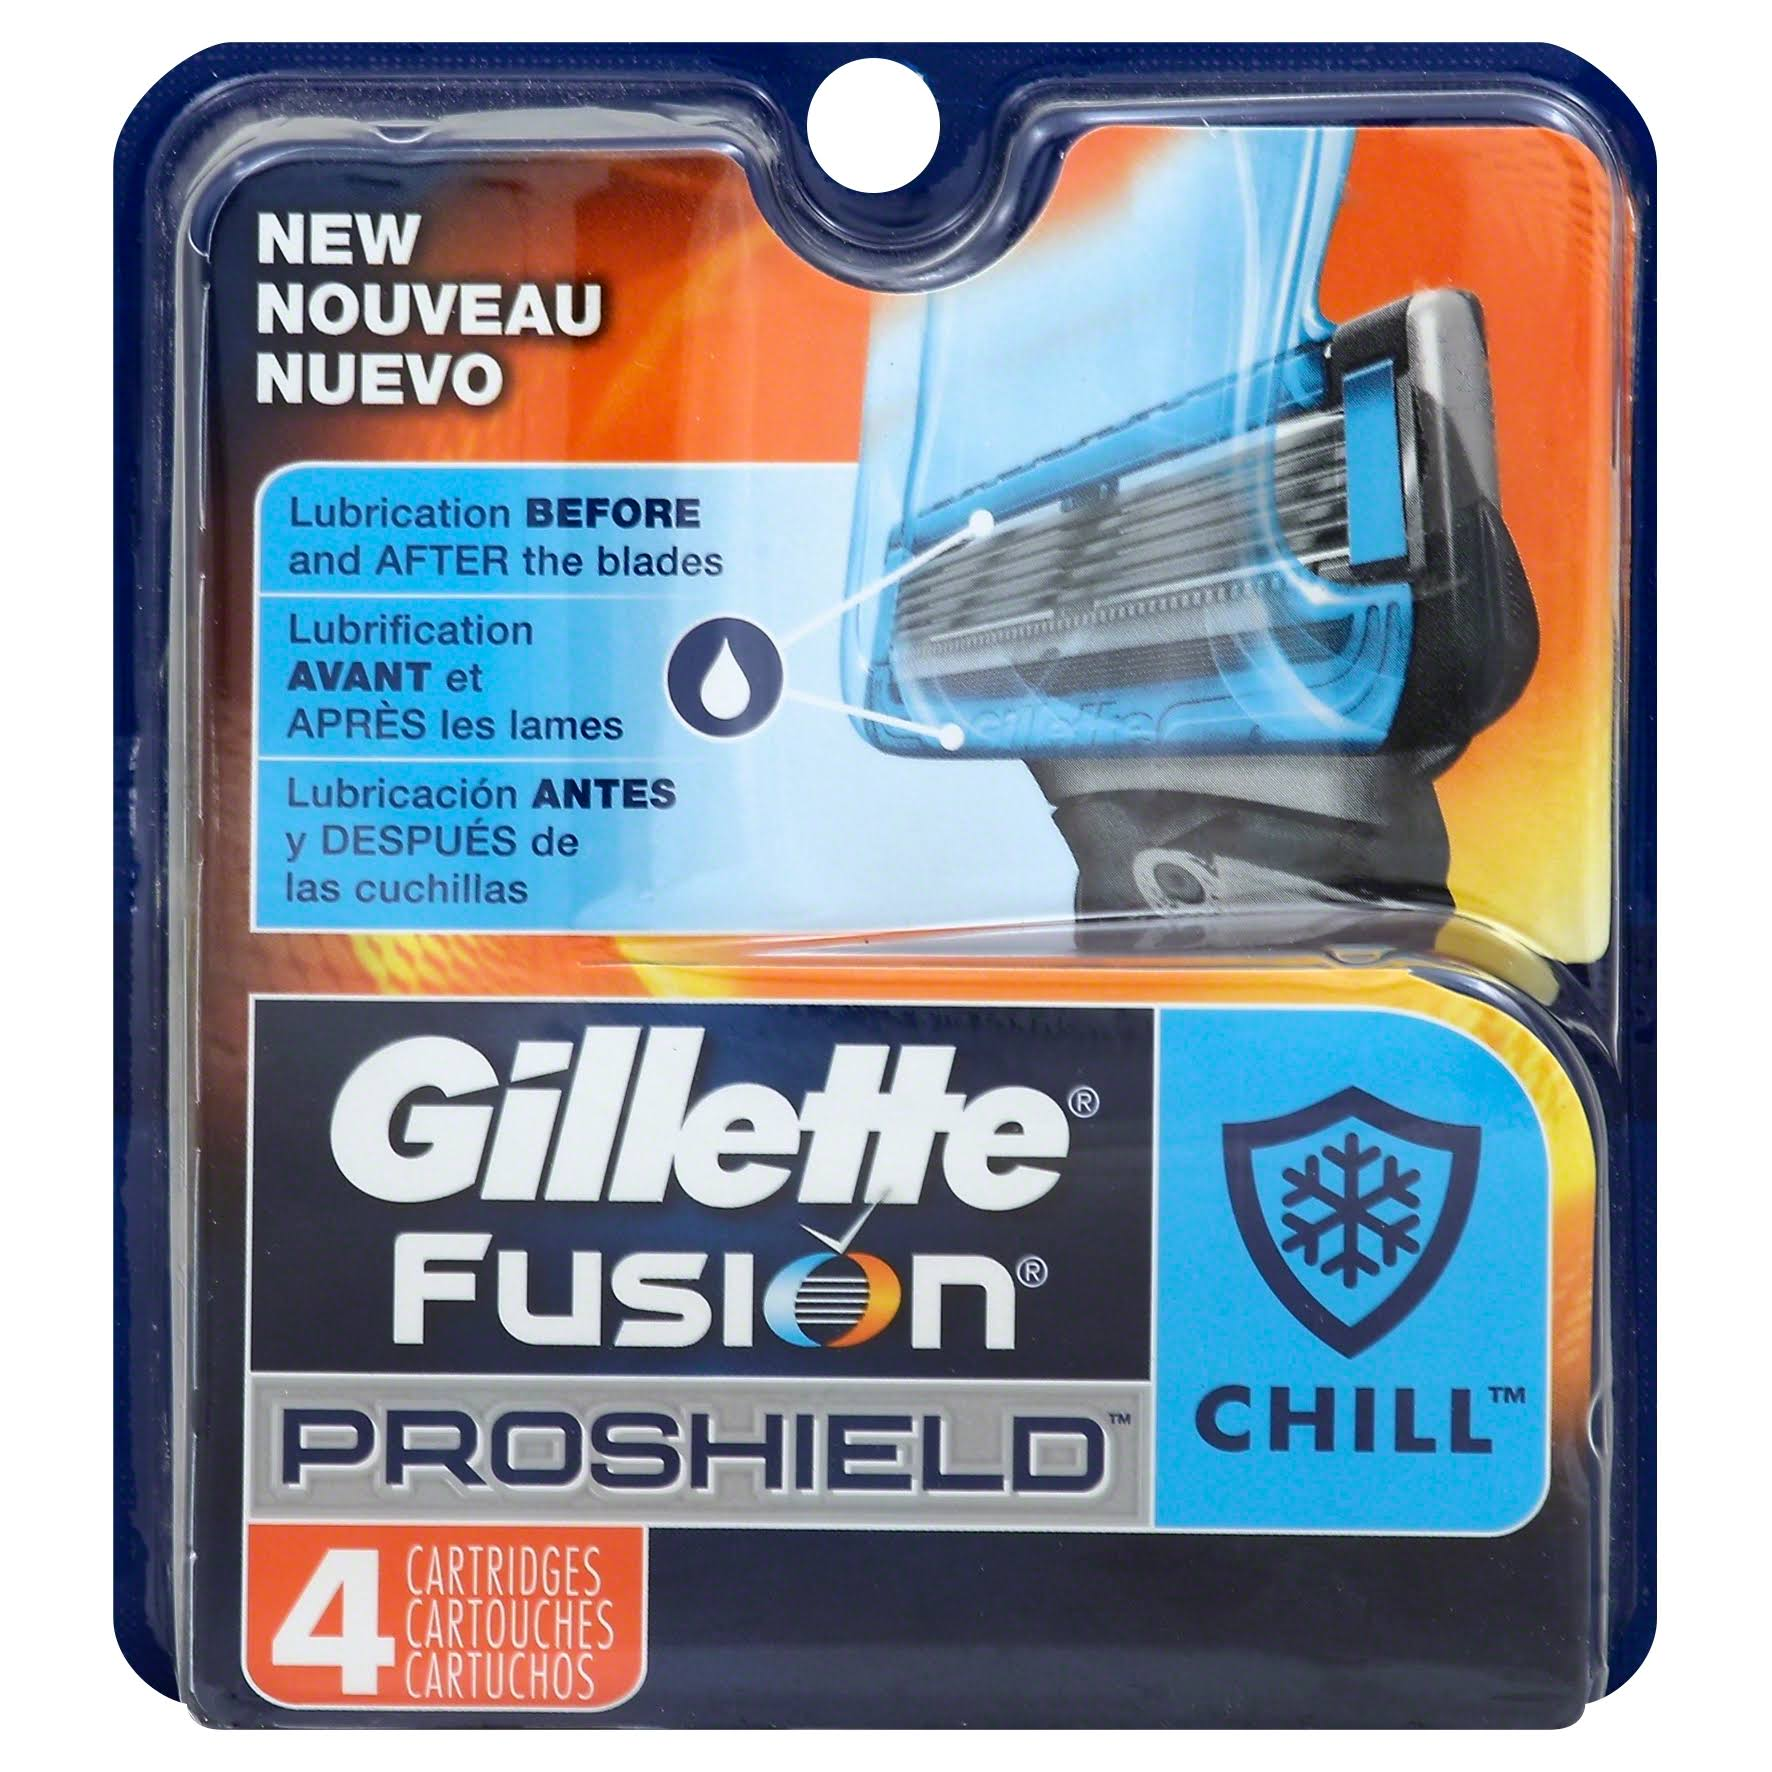 Gillette Fusion ProShield Chill Men's Razor Blades - x4